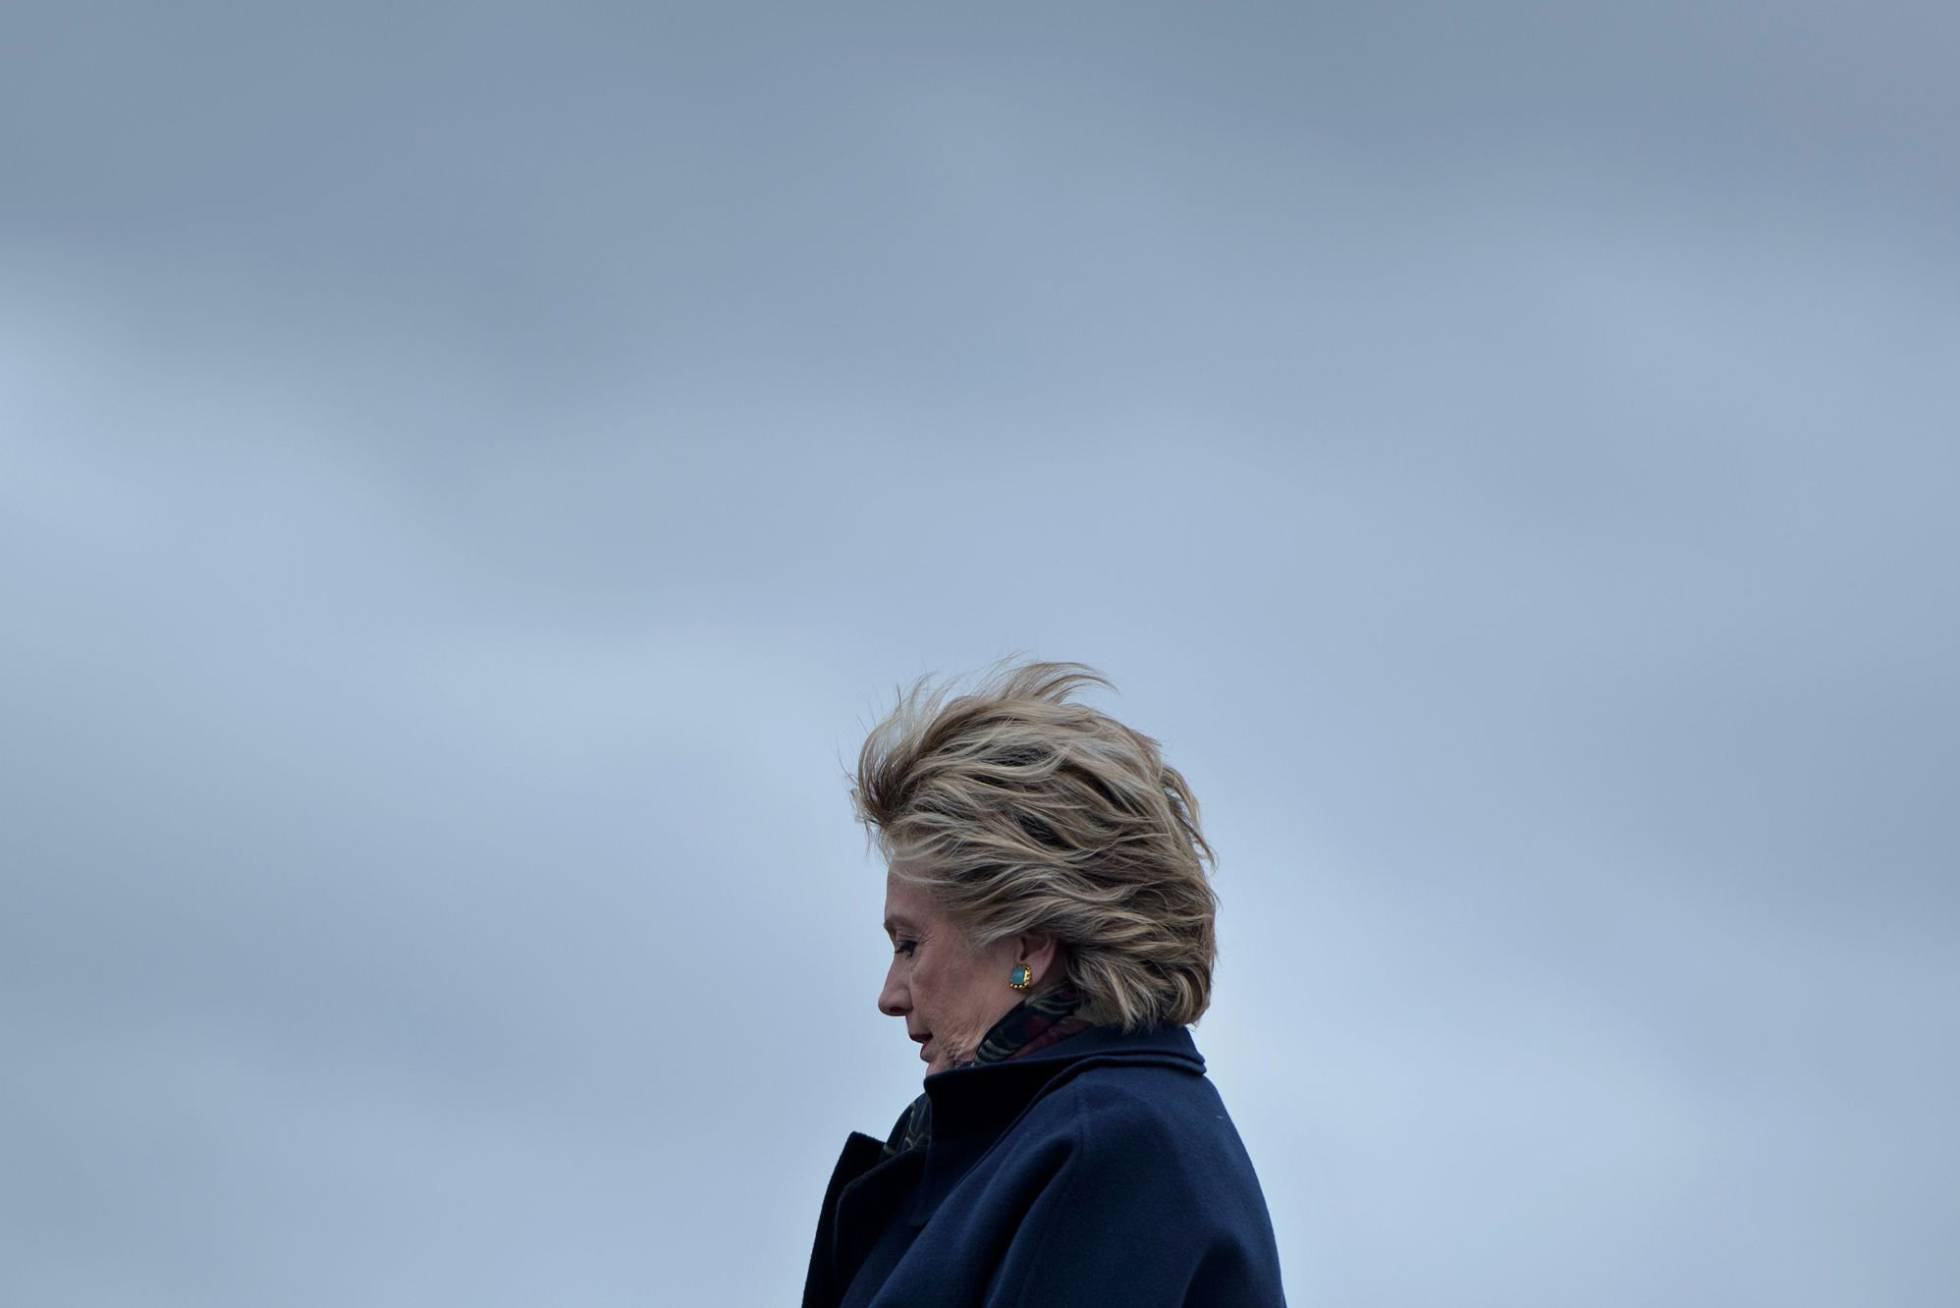 Hillary Clinton en Seattle, Washington. BRENDAN SMIALOWSKI AFP